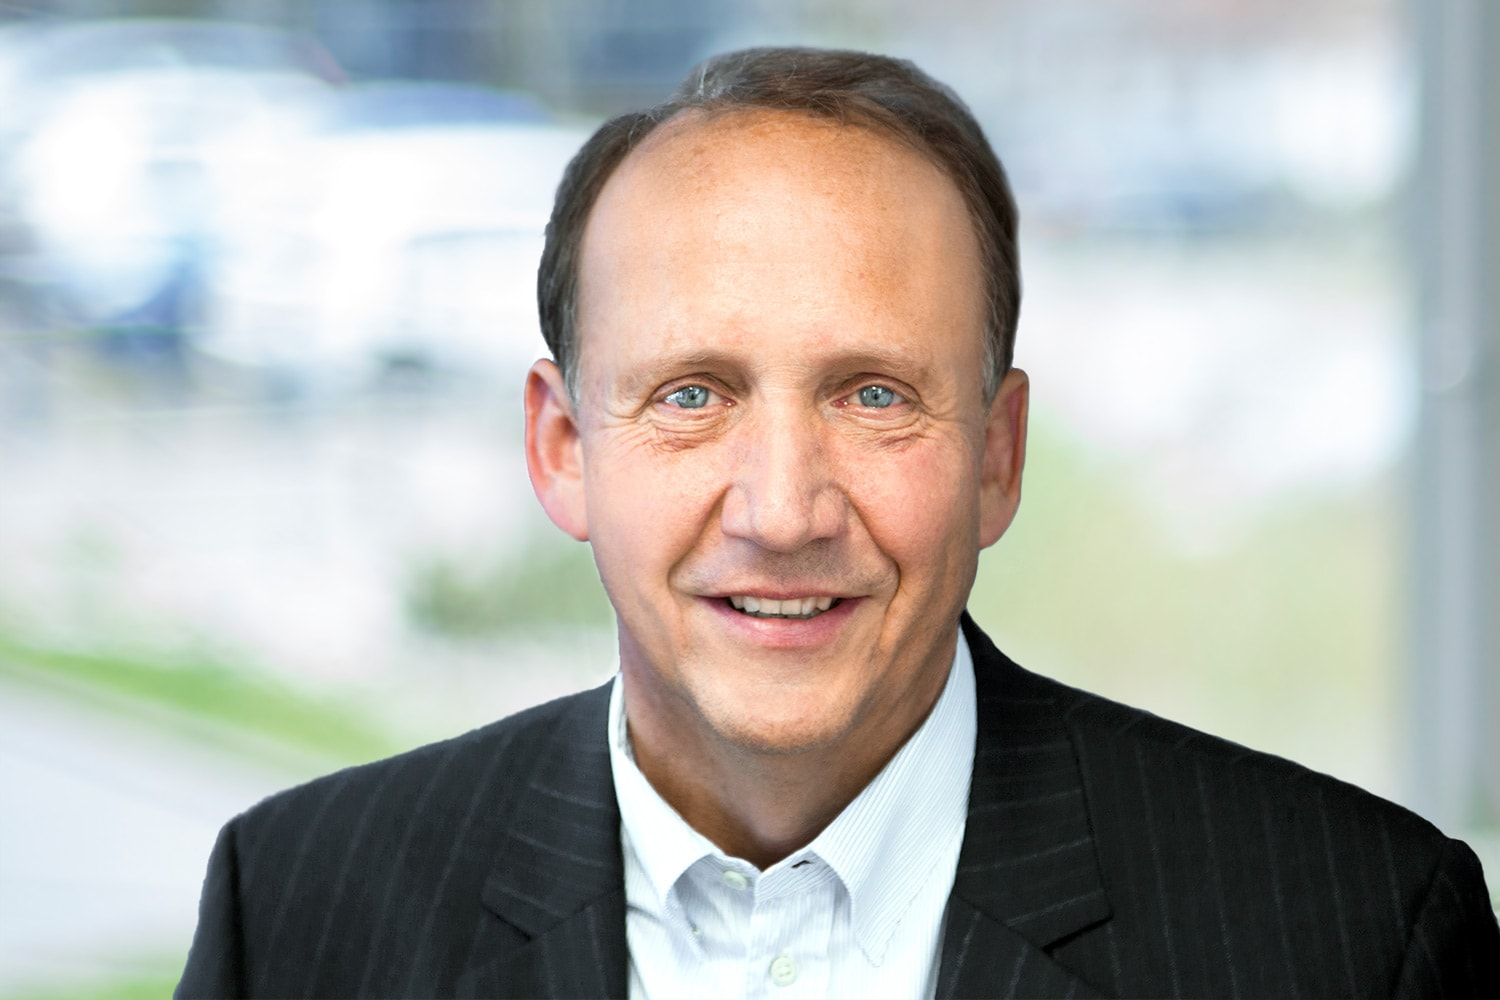 Prof. Dr. Andreas Hufnagel